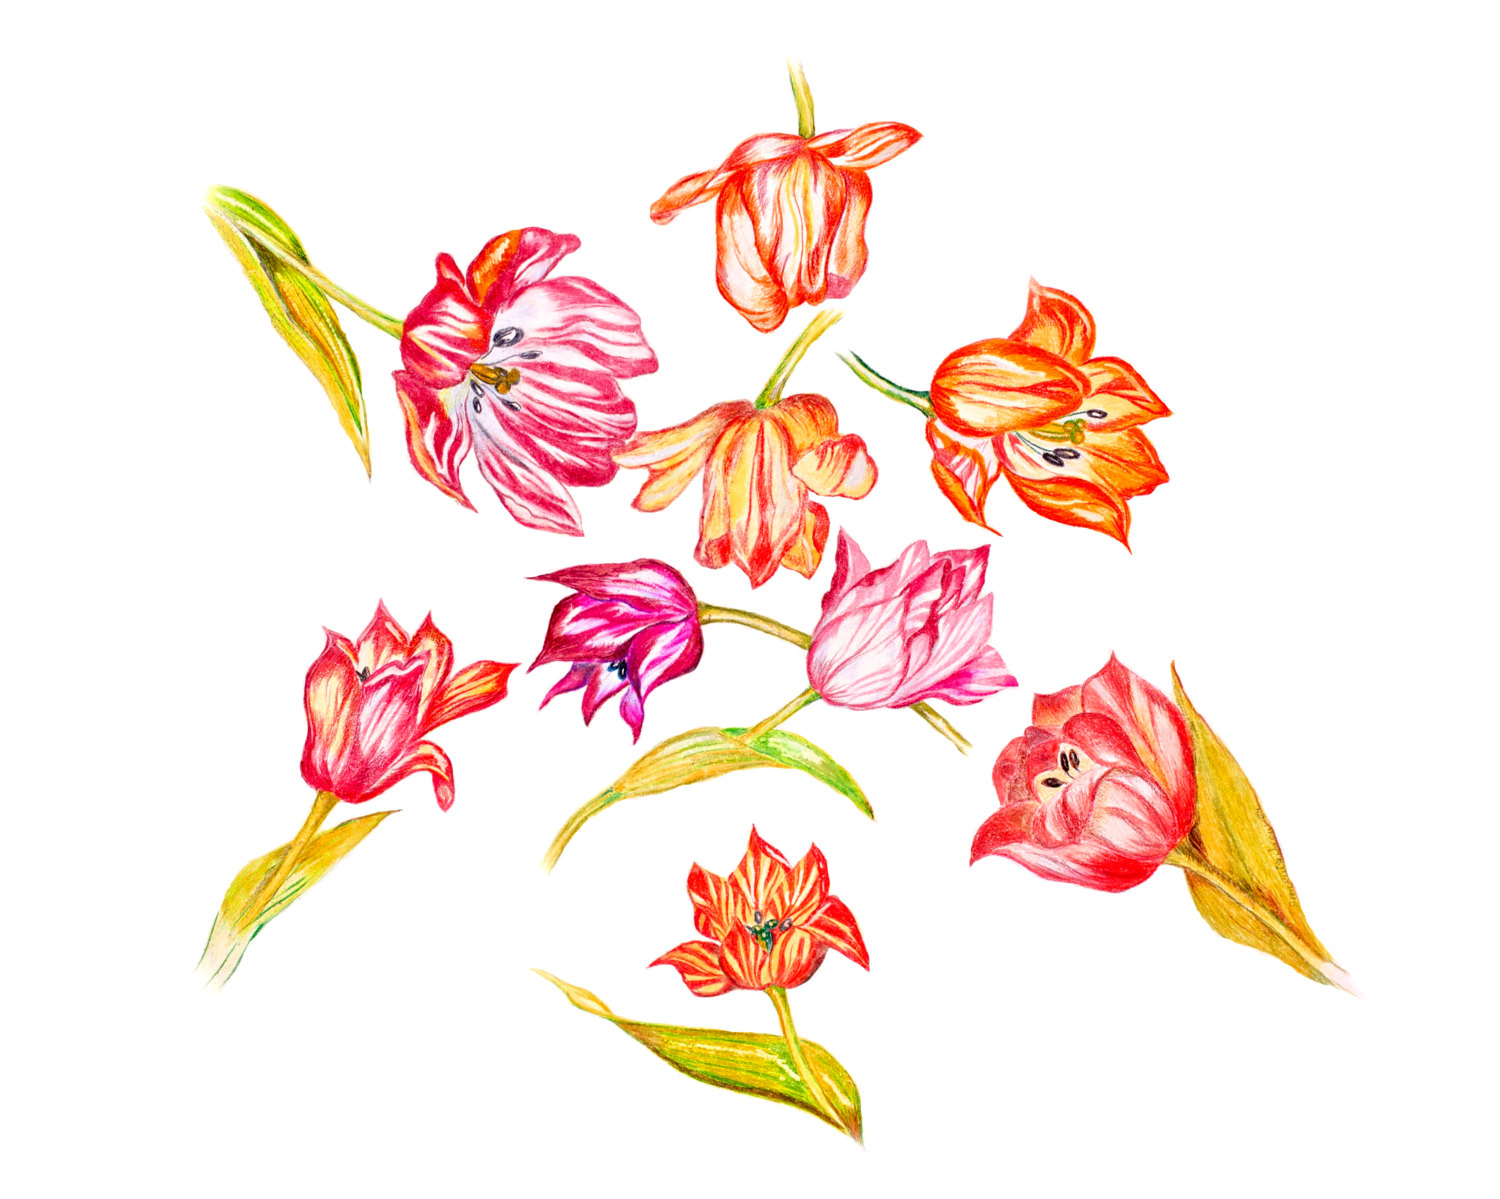 LIMITED EDITION of Strewn Tulips symbolizing True Love and Heralds.